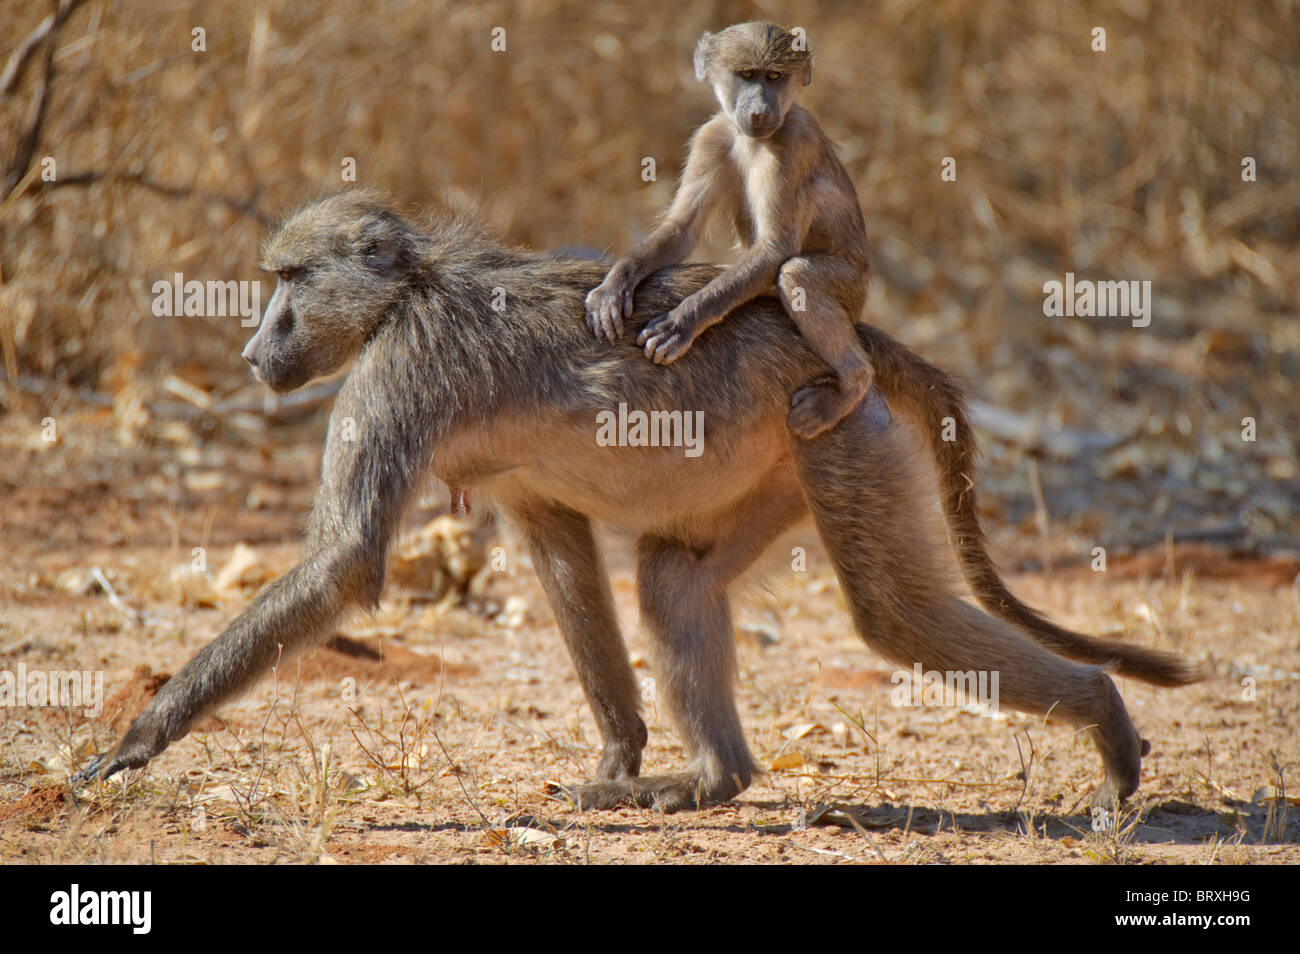 Chacma Baboon or Cape Baboon (Papio ursinus), with young, Mahango Game Reserve, Namibia, Africa - Stock Image